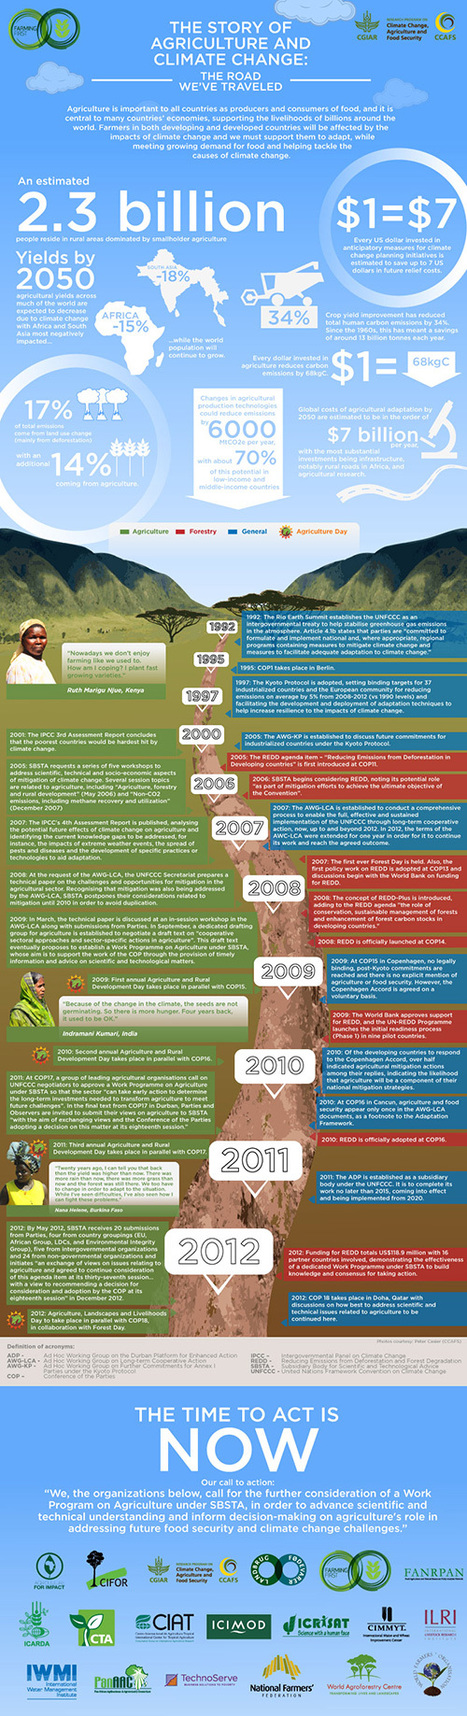 Infographic: Charting the History of Agriculture & Climate Change | Mrs. Watson's Class | Scoop.it